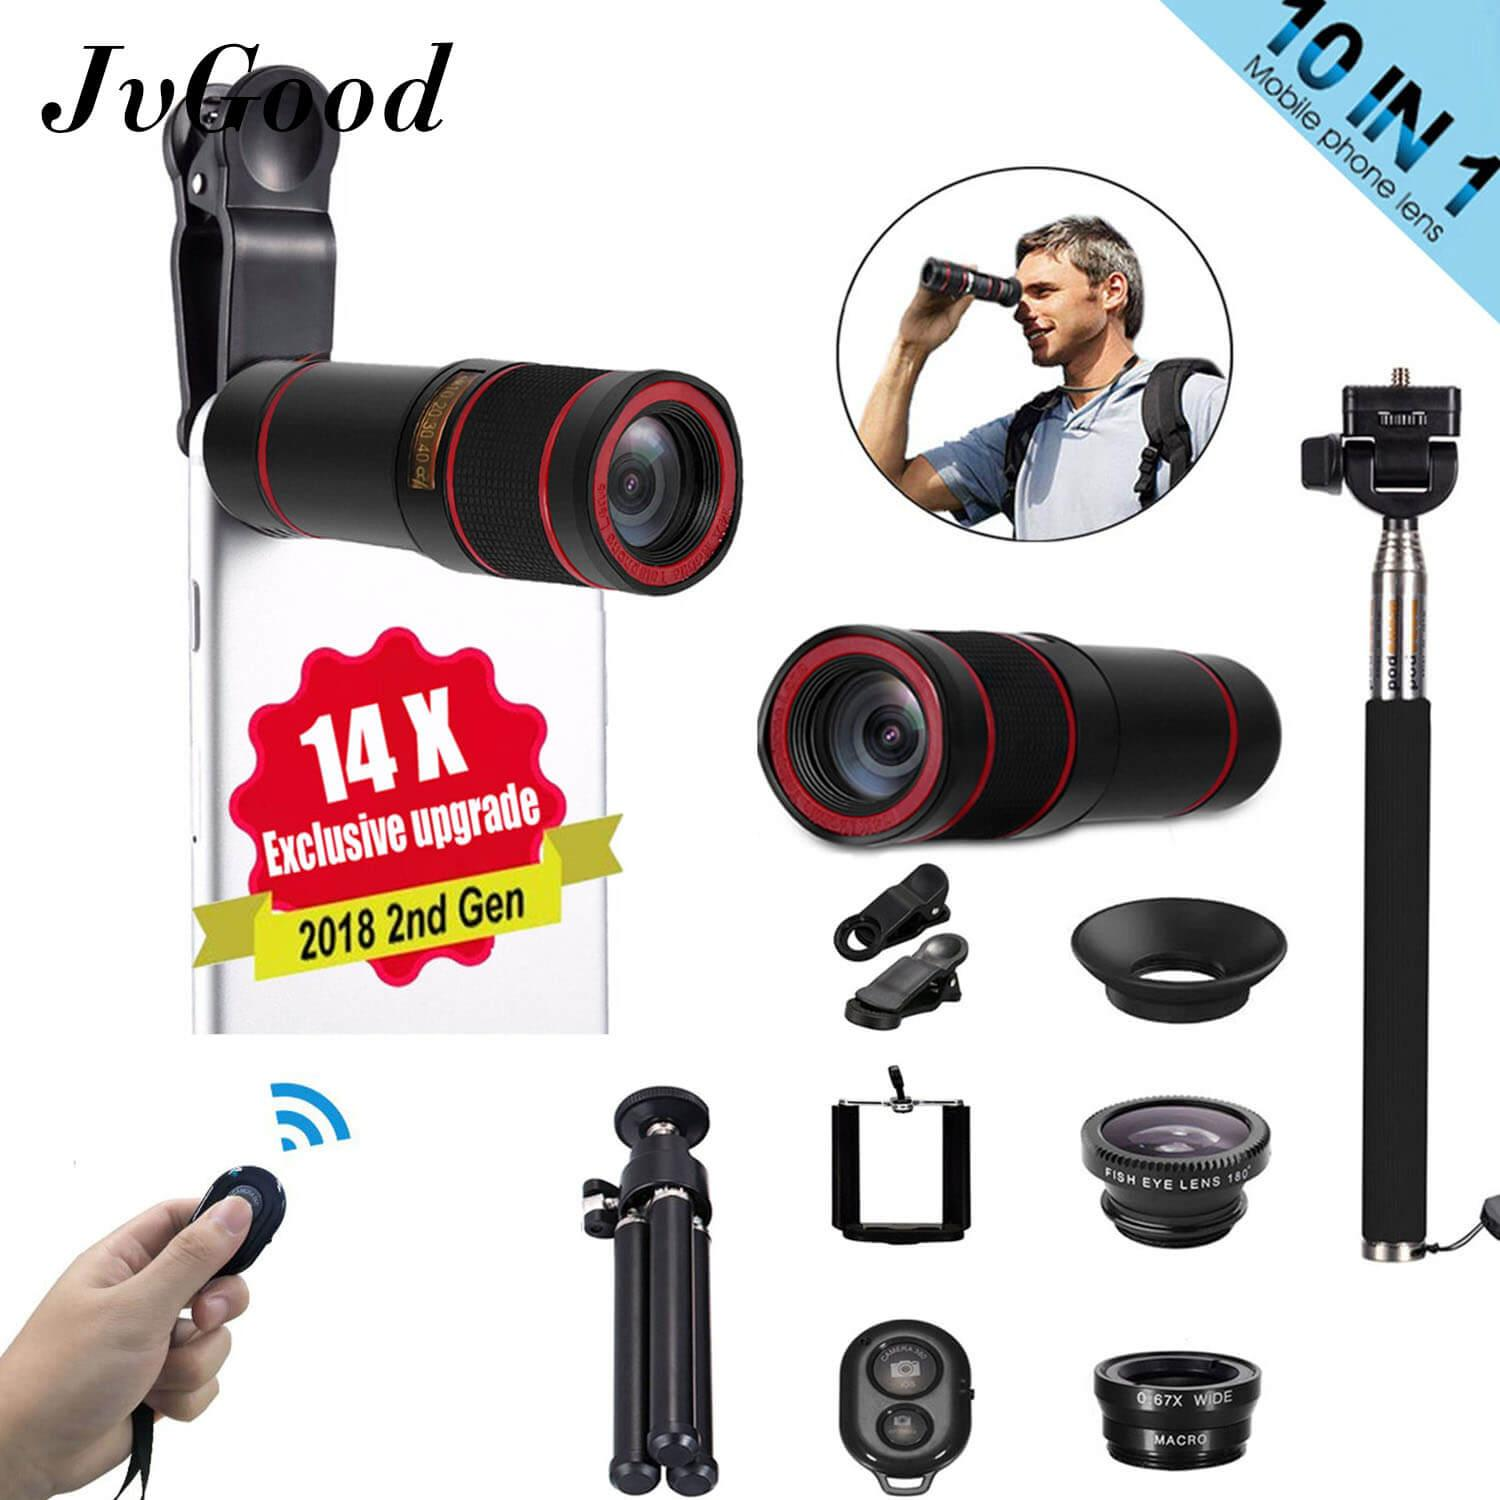 Jvgood Phone Camera Lens Set For Mobile Phone 10 In1 Travel Black Fisheye+wide Angle+macro+14x Telescope Telephoto Lens+mini Tripod+phone Holder By Jvgood.